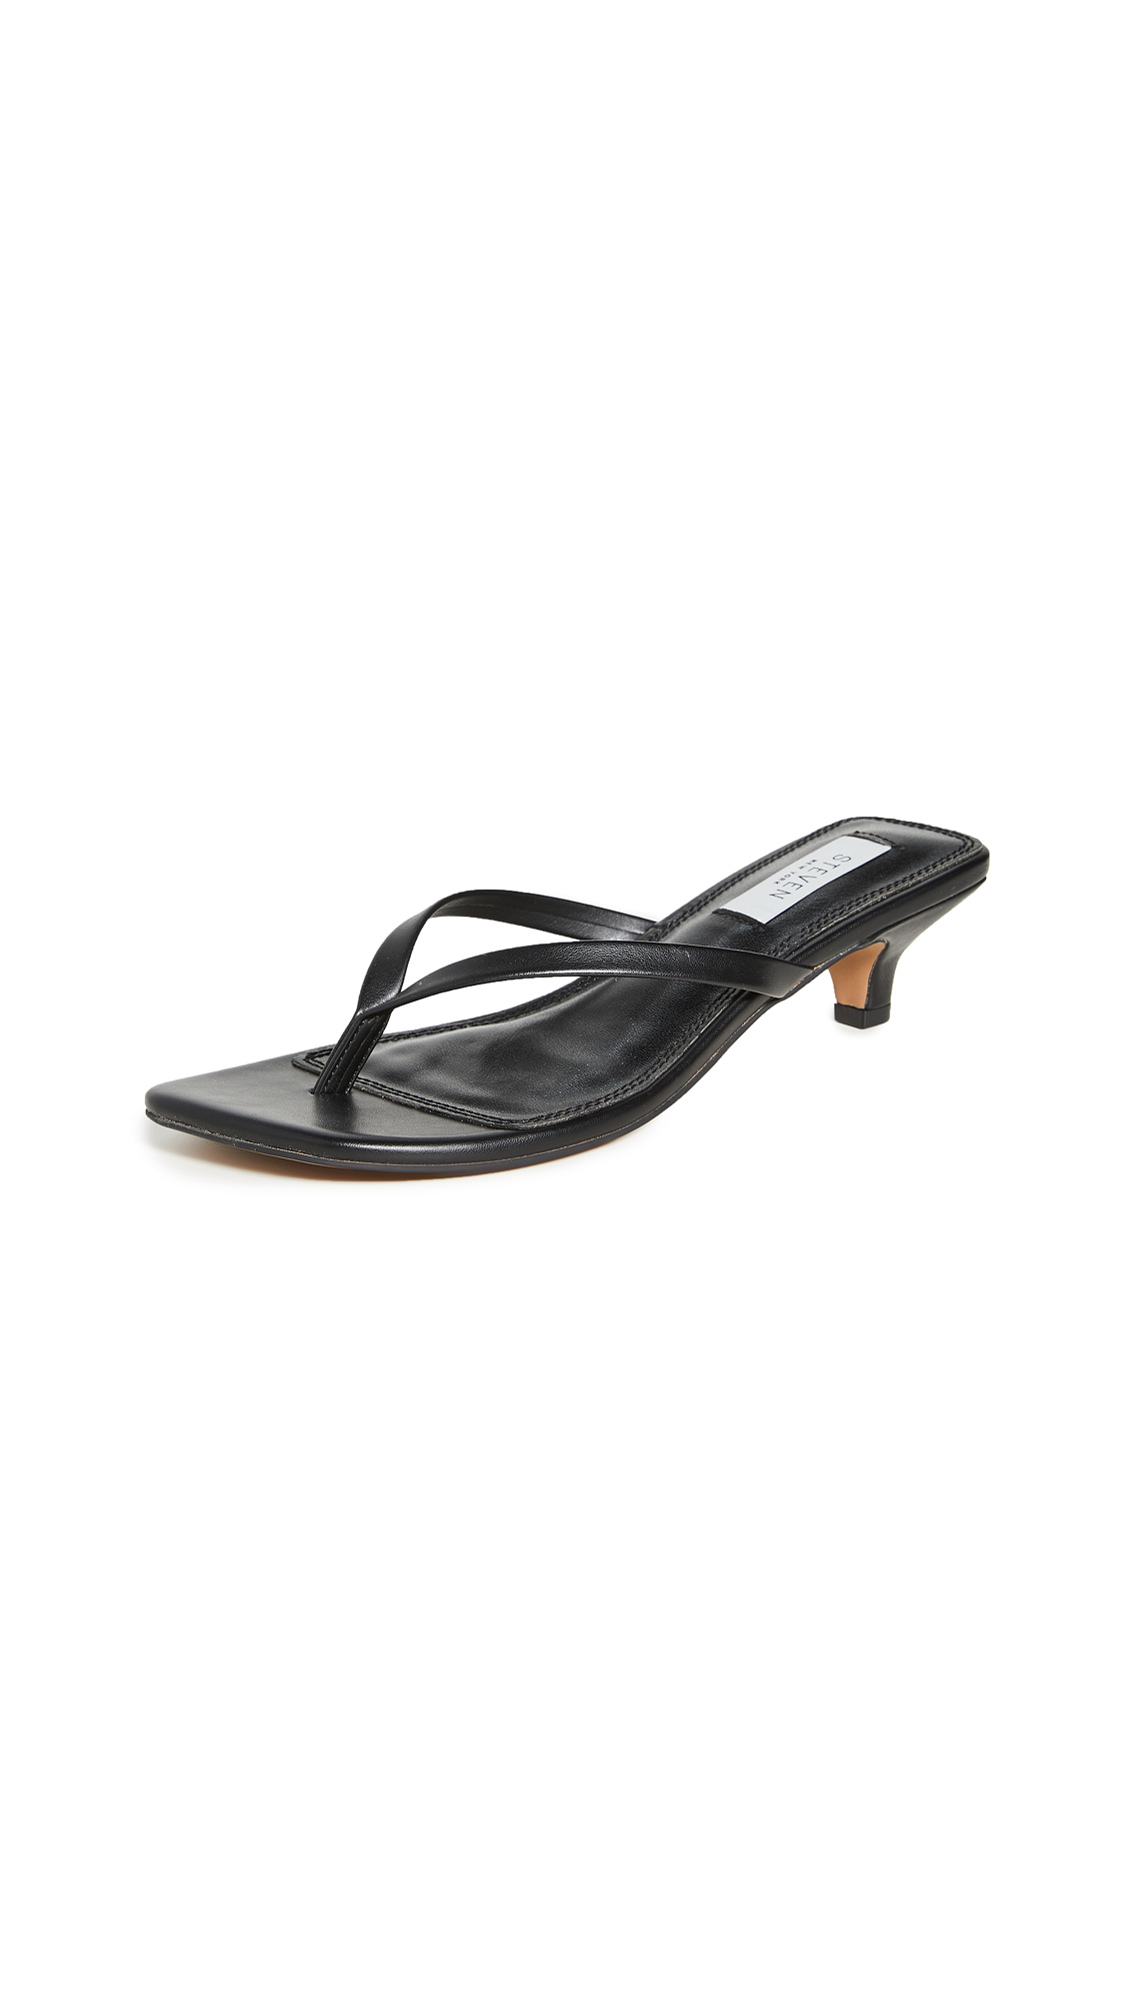 Buy Steven Tippie Sandals online, shop Steven